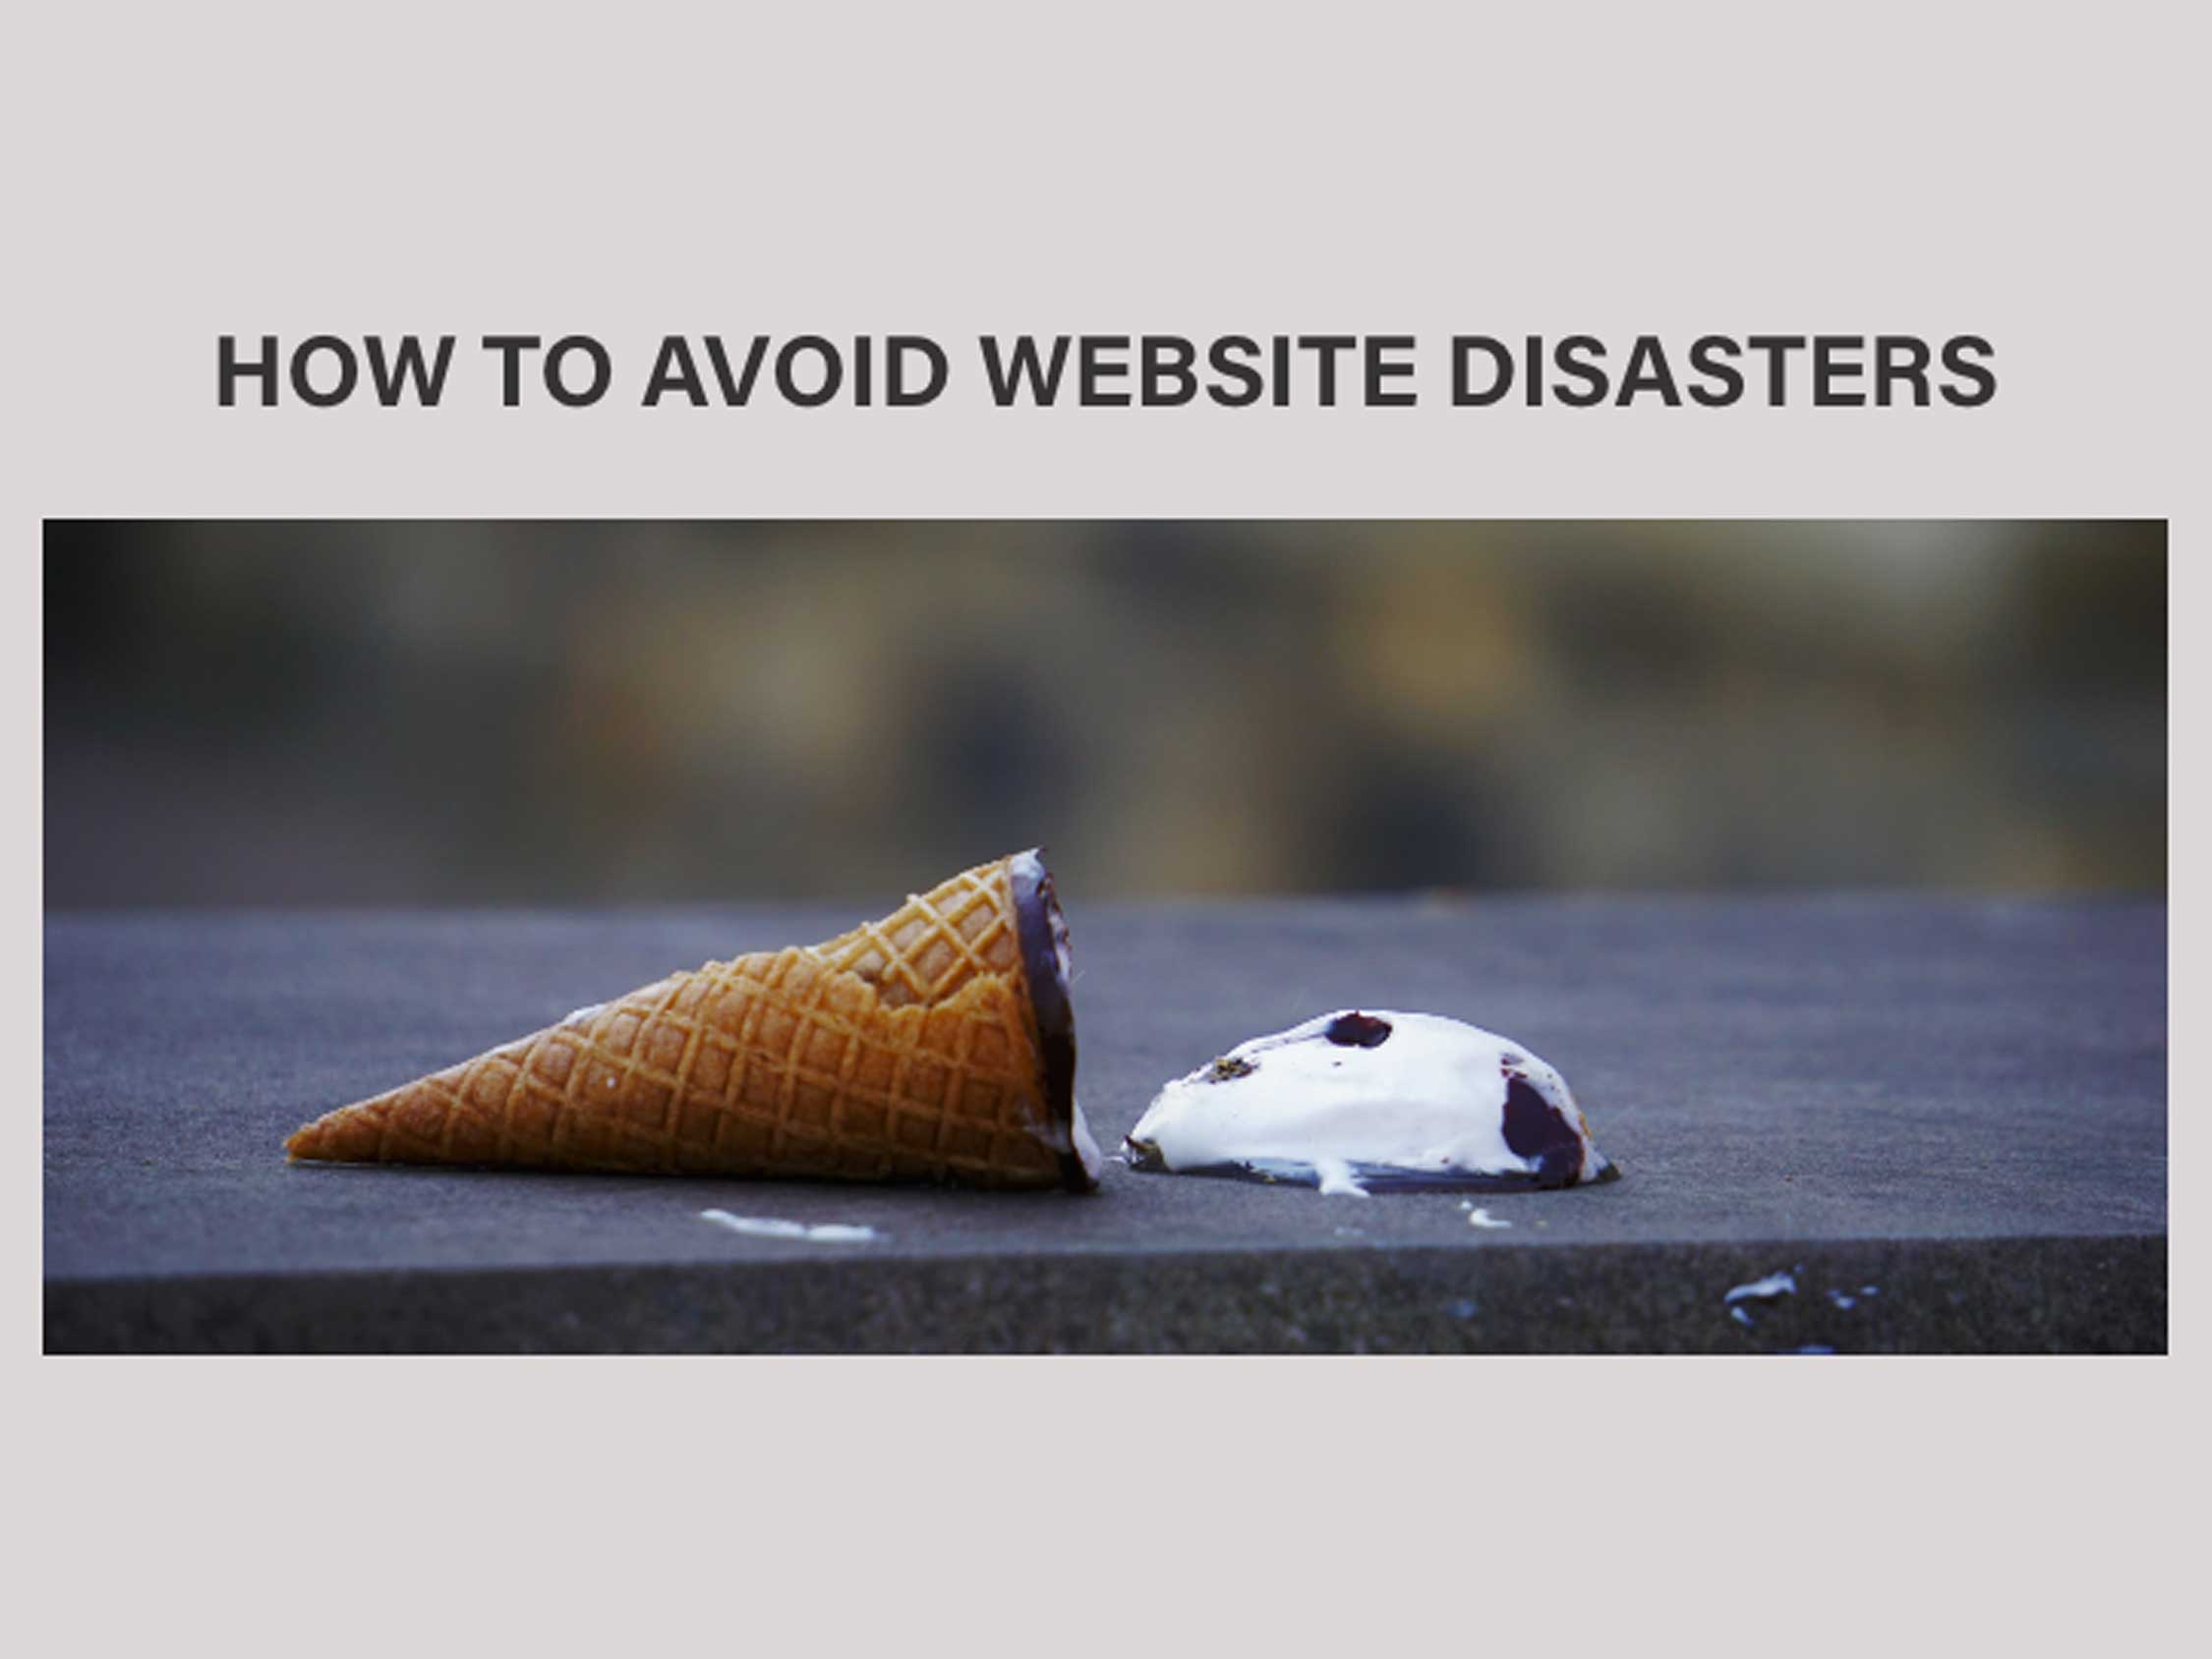 how to avoid website disasters article thumbnail showing a dropped icecream